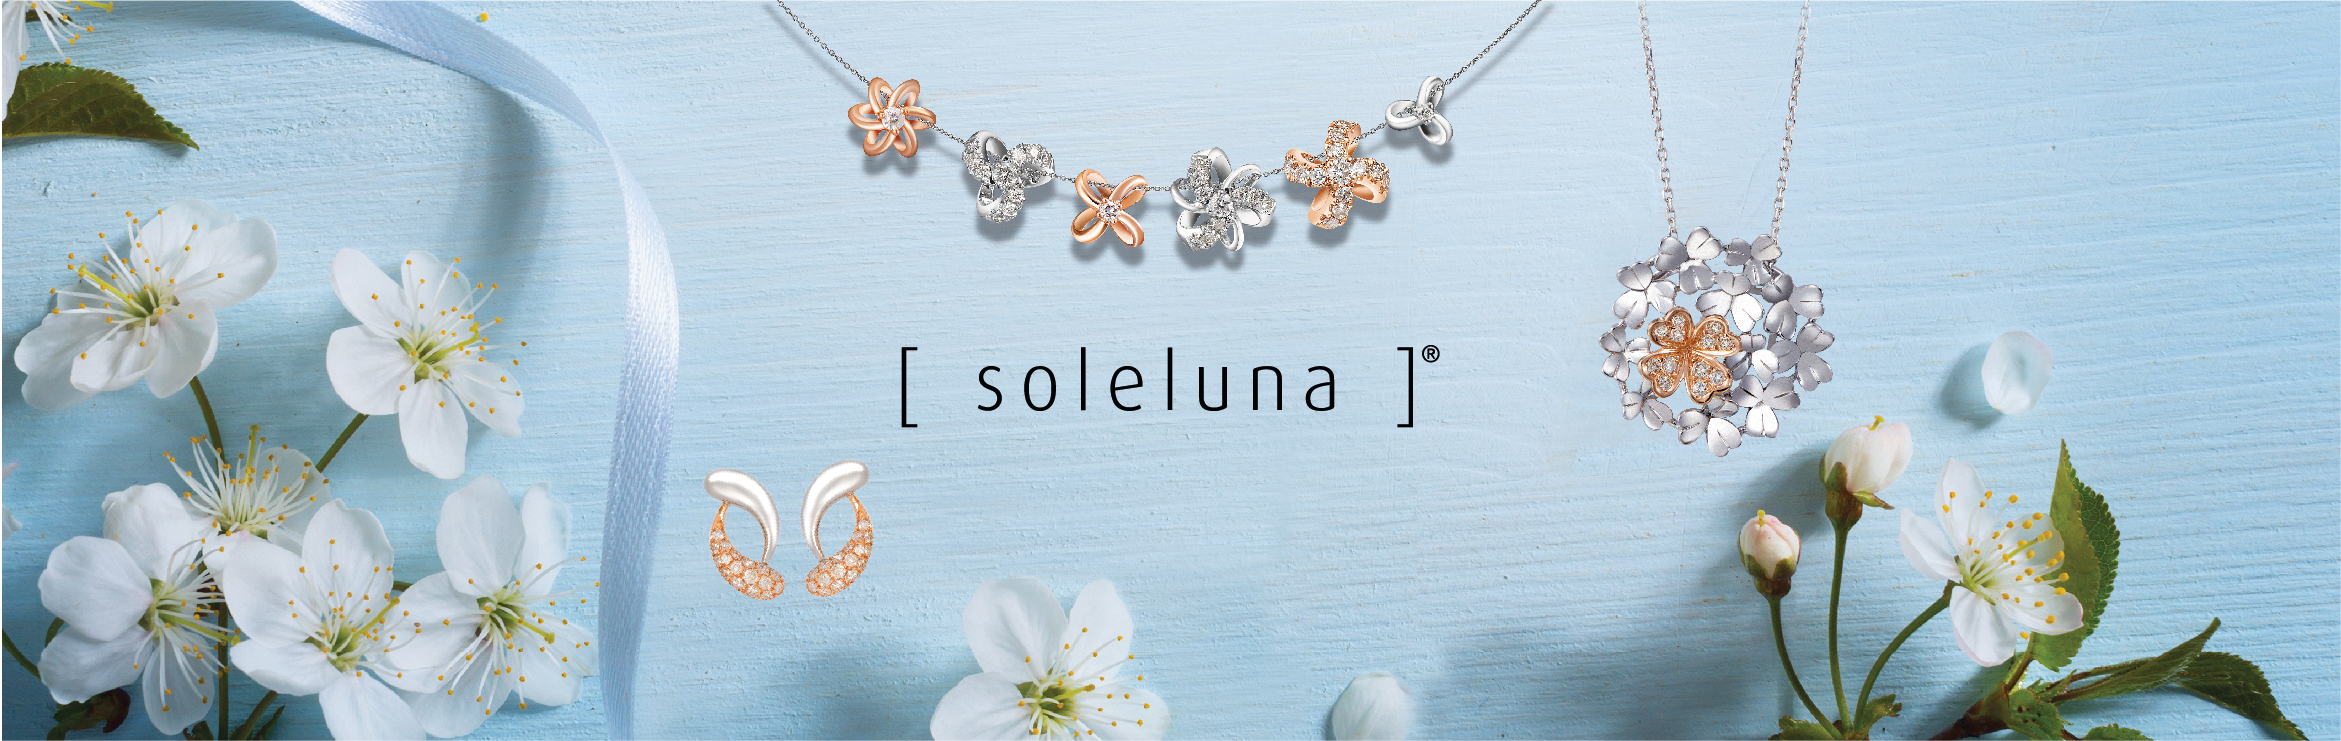 Soleluna YÒU Double Yú Diamond Necklace